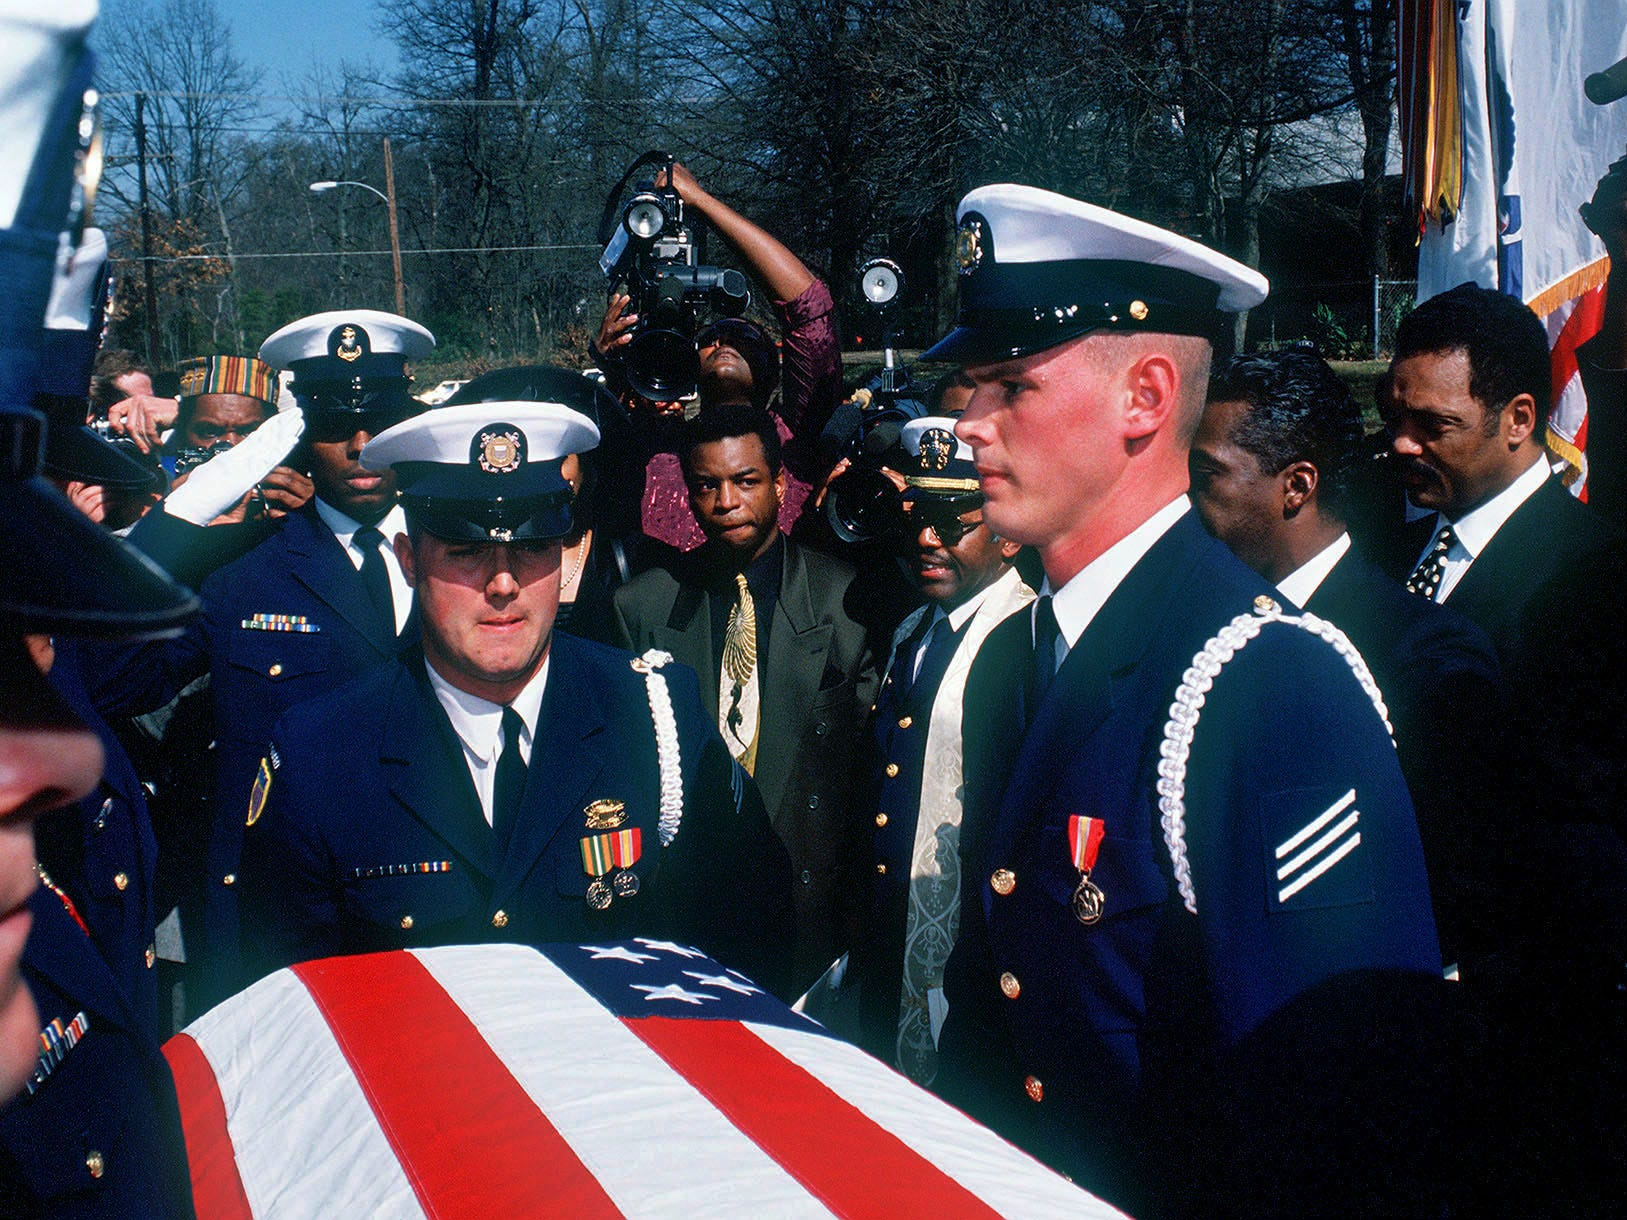 """A U.S. Coast Guard honor guard bears the casket of Alex Haley after funeral services Saturday in Memphis. """"Roots"""" star LaVar Burton, center with gold tie, and the Rev. Jesse Jackson, far right, accompany the casket Feb. 15, 1992."""